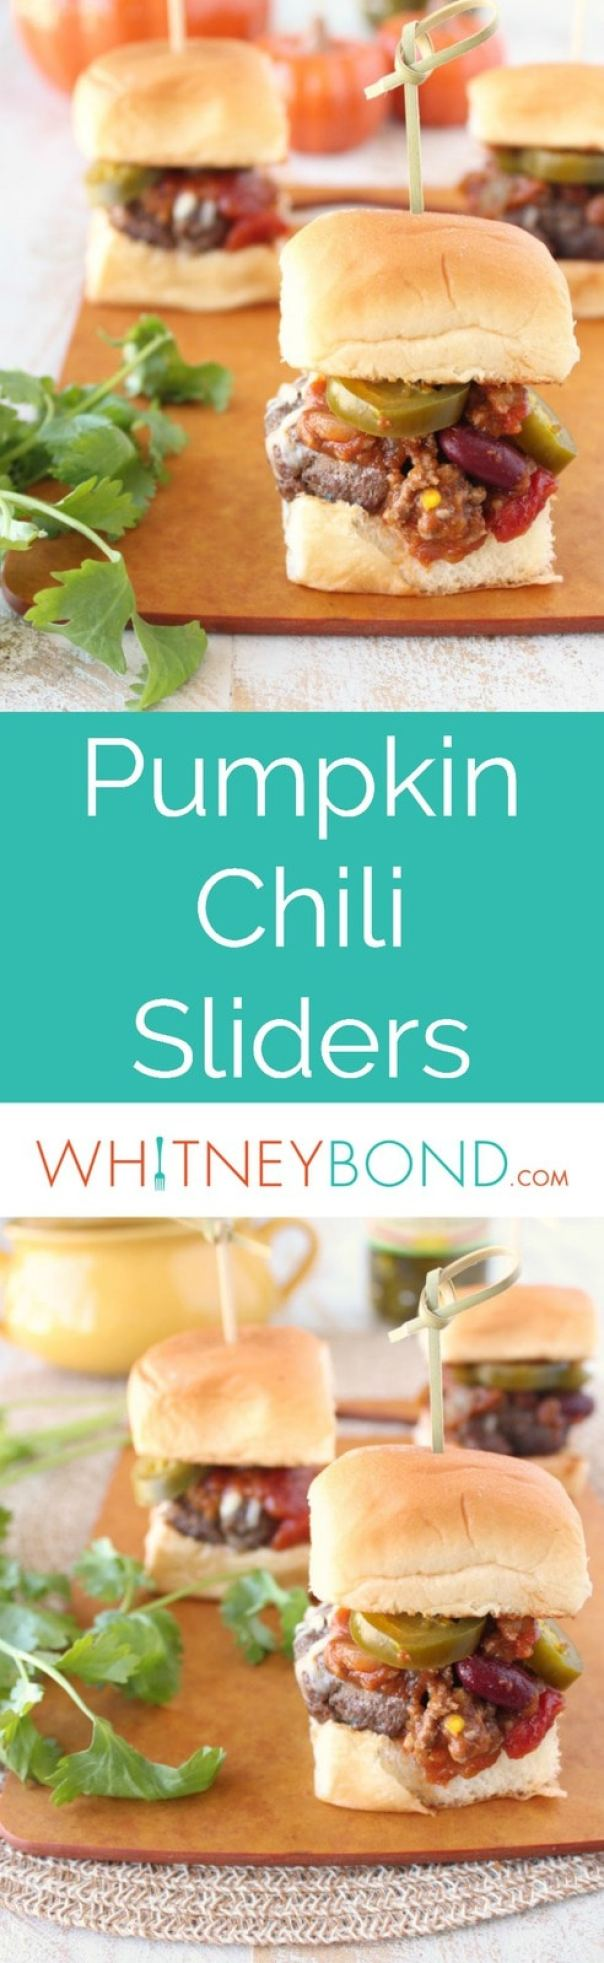 Small pumpkin spiced burger patties are topped with pumpkin chili and served on Hawaiian rolls in this delicious fall recipe twist on chili sliders.